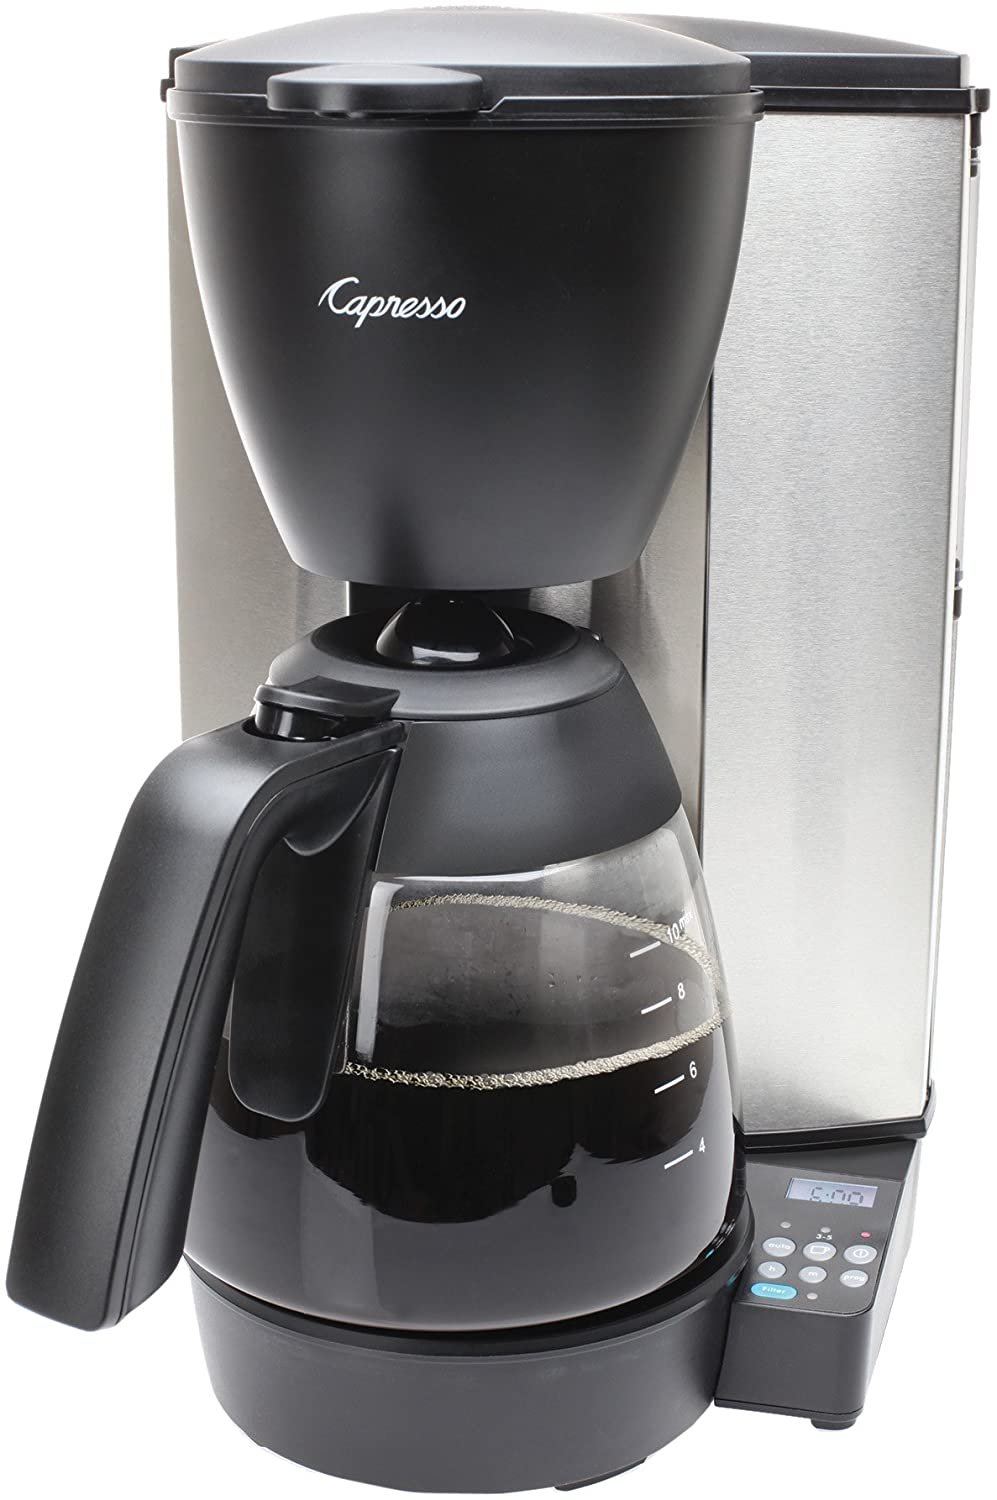 早い者勝ち Capresso Carafe 484.05 MG600 Plus 10-Cup Programmable Programmable Coffee Maker 10-Cup with Glass Carafe by Capresso B0064ONLW0, ヴェニスの商人:7227ddd1 --- mfphoto.ie